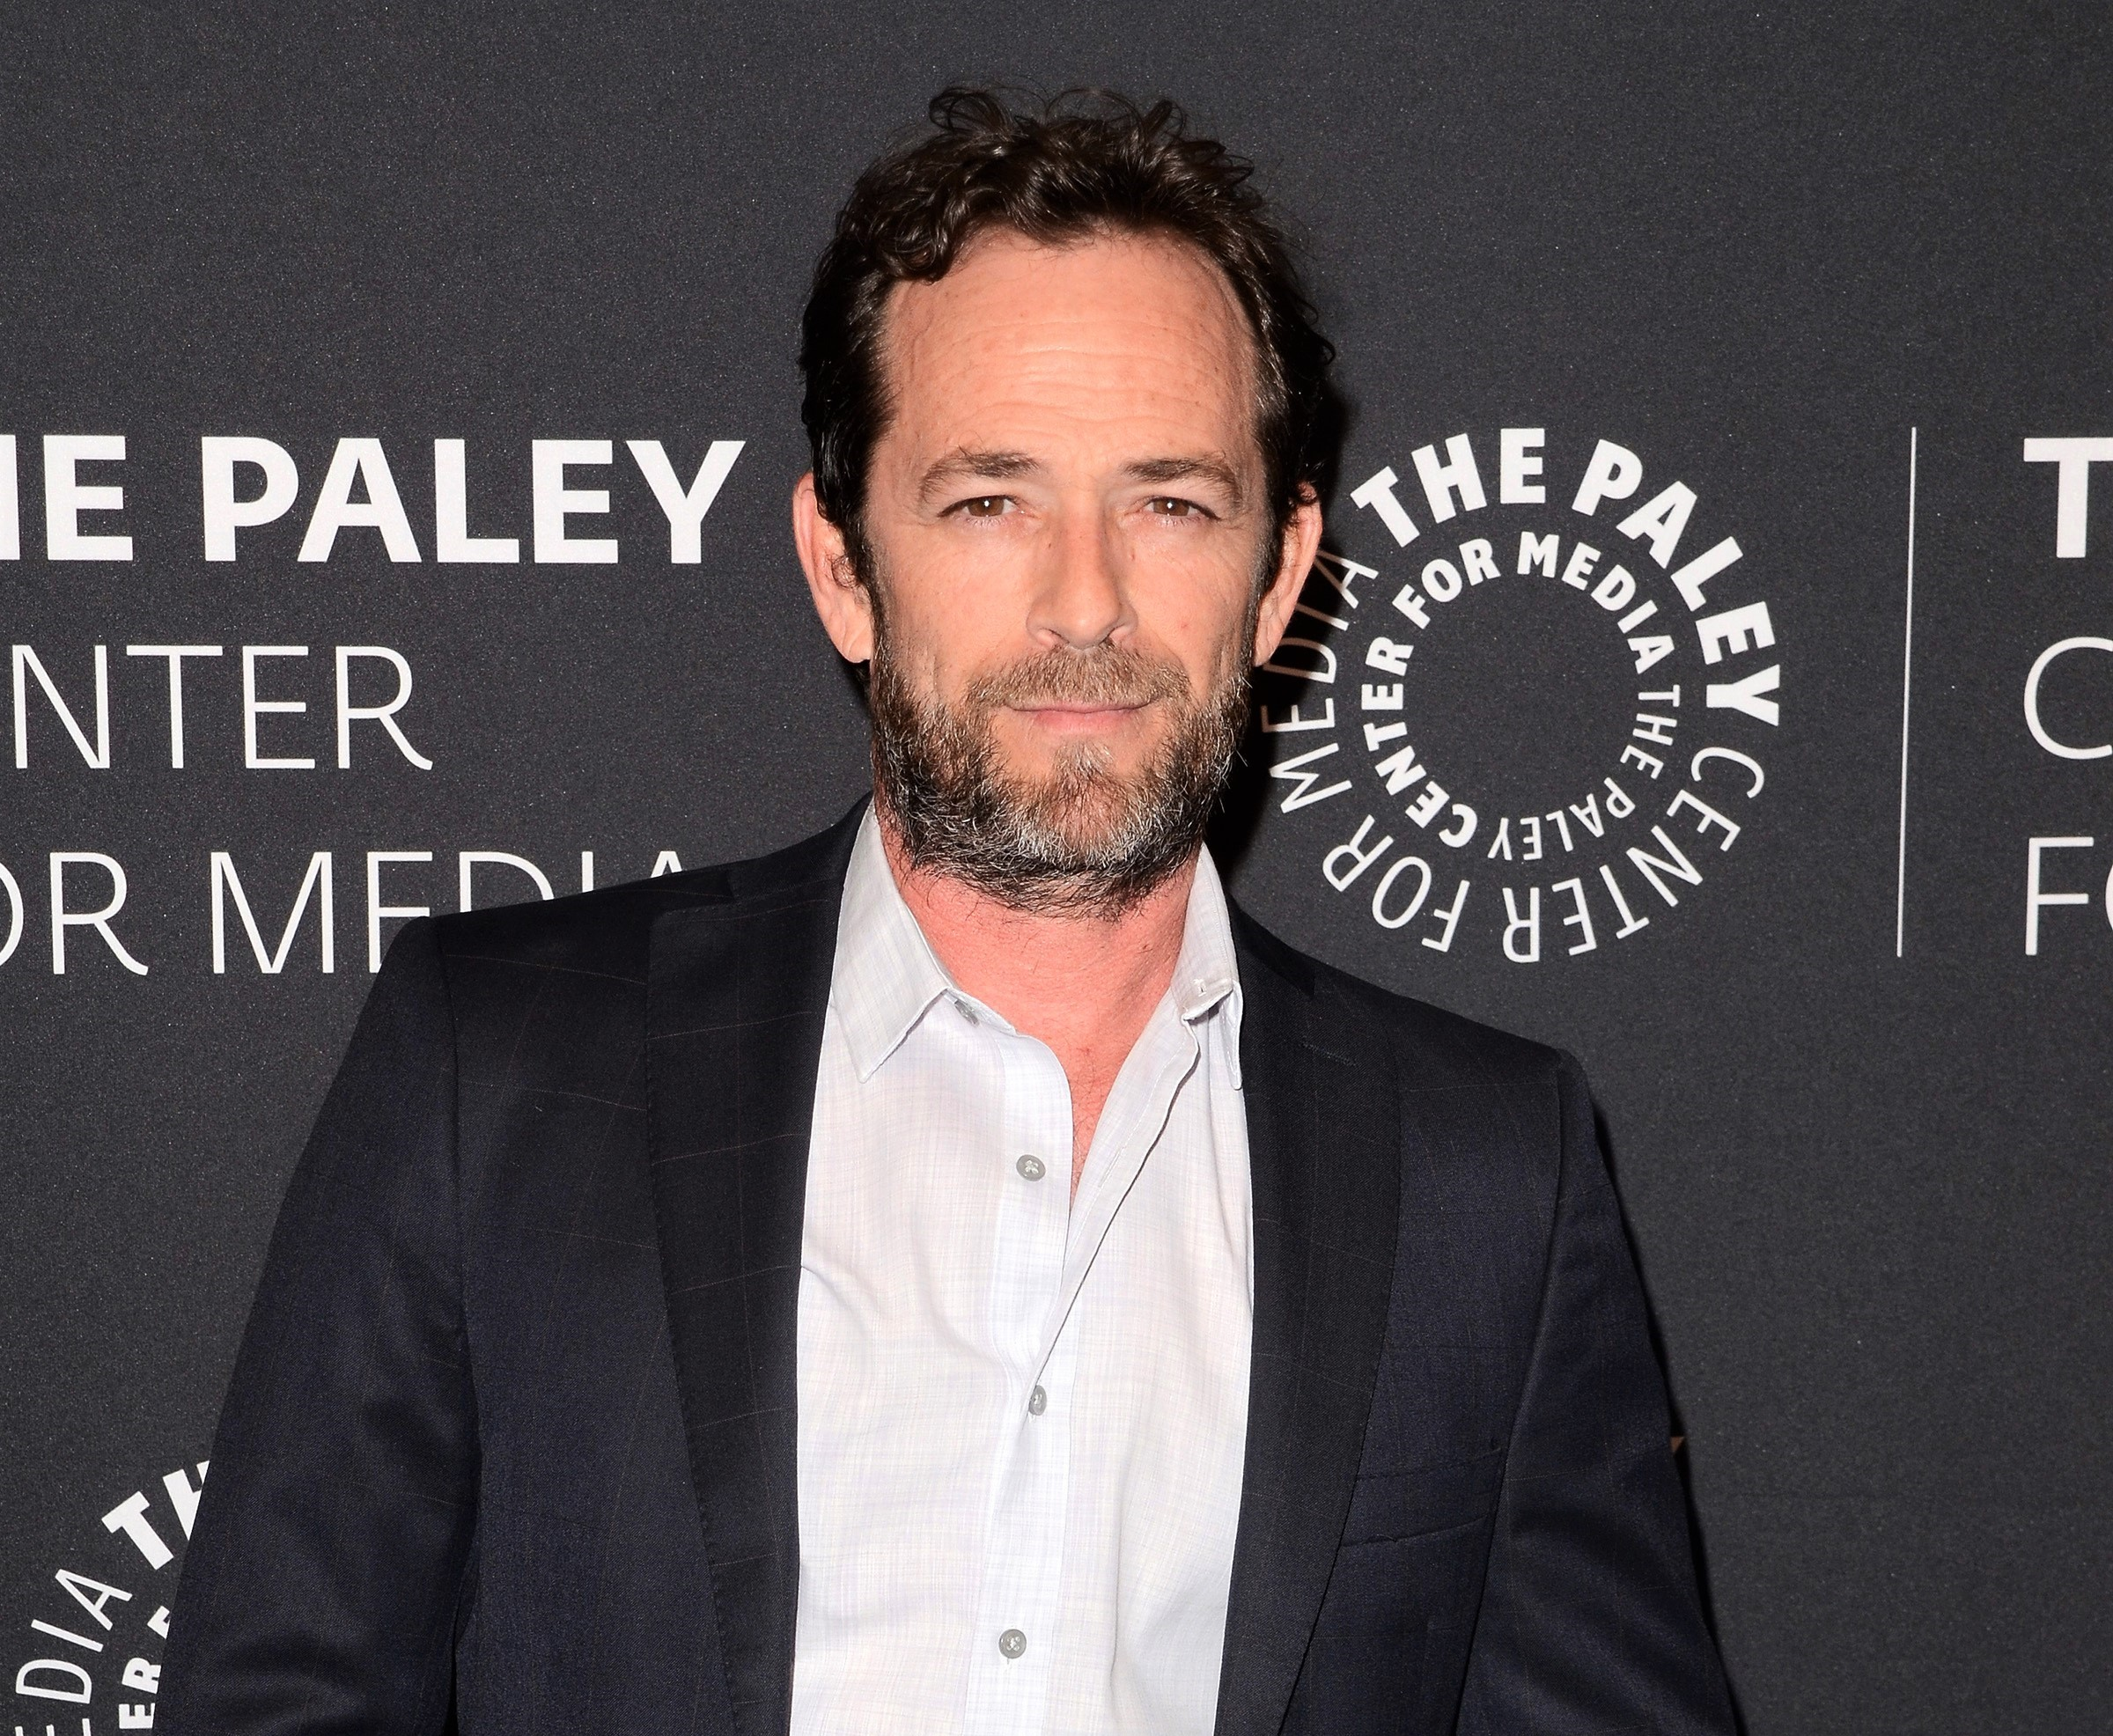 Ian Ziering, Molly Ringwald and More Stars Mourn Luke Perry's Death: 'My Heart Is Broken'